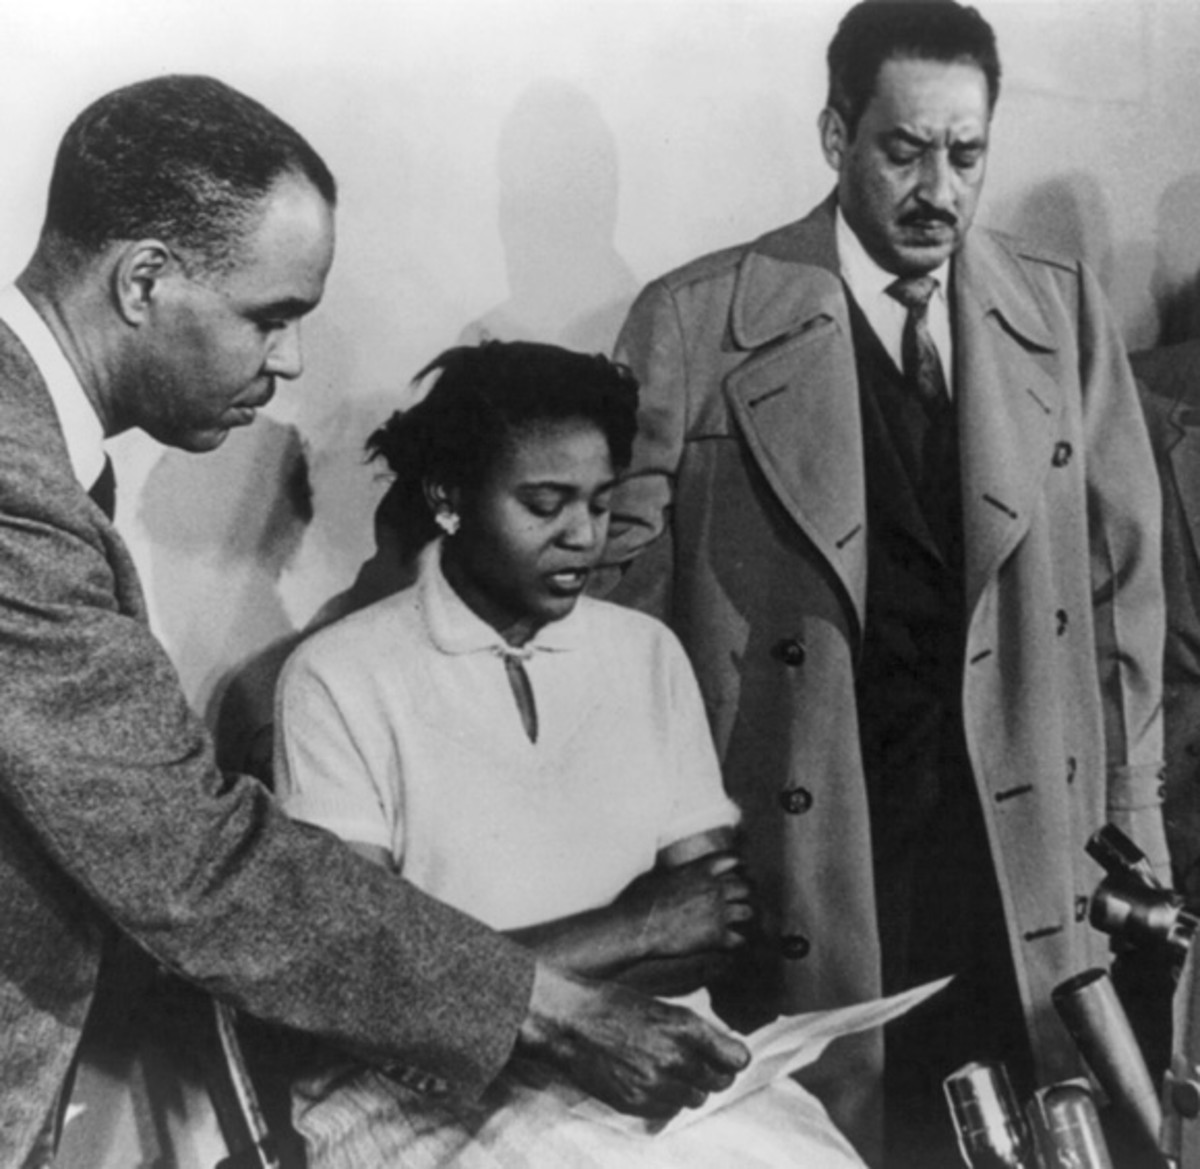 Autherine-Lucy-21397127-2-raw